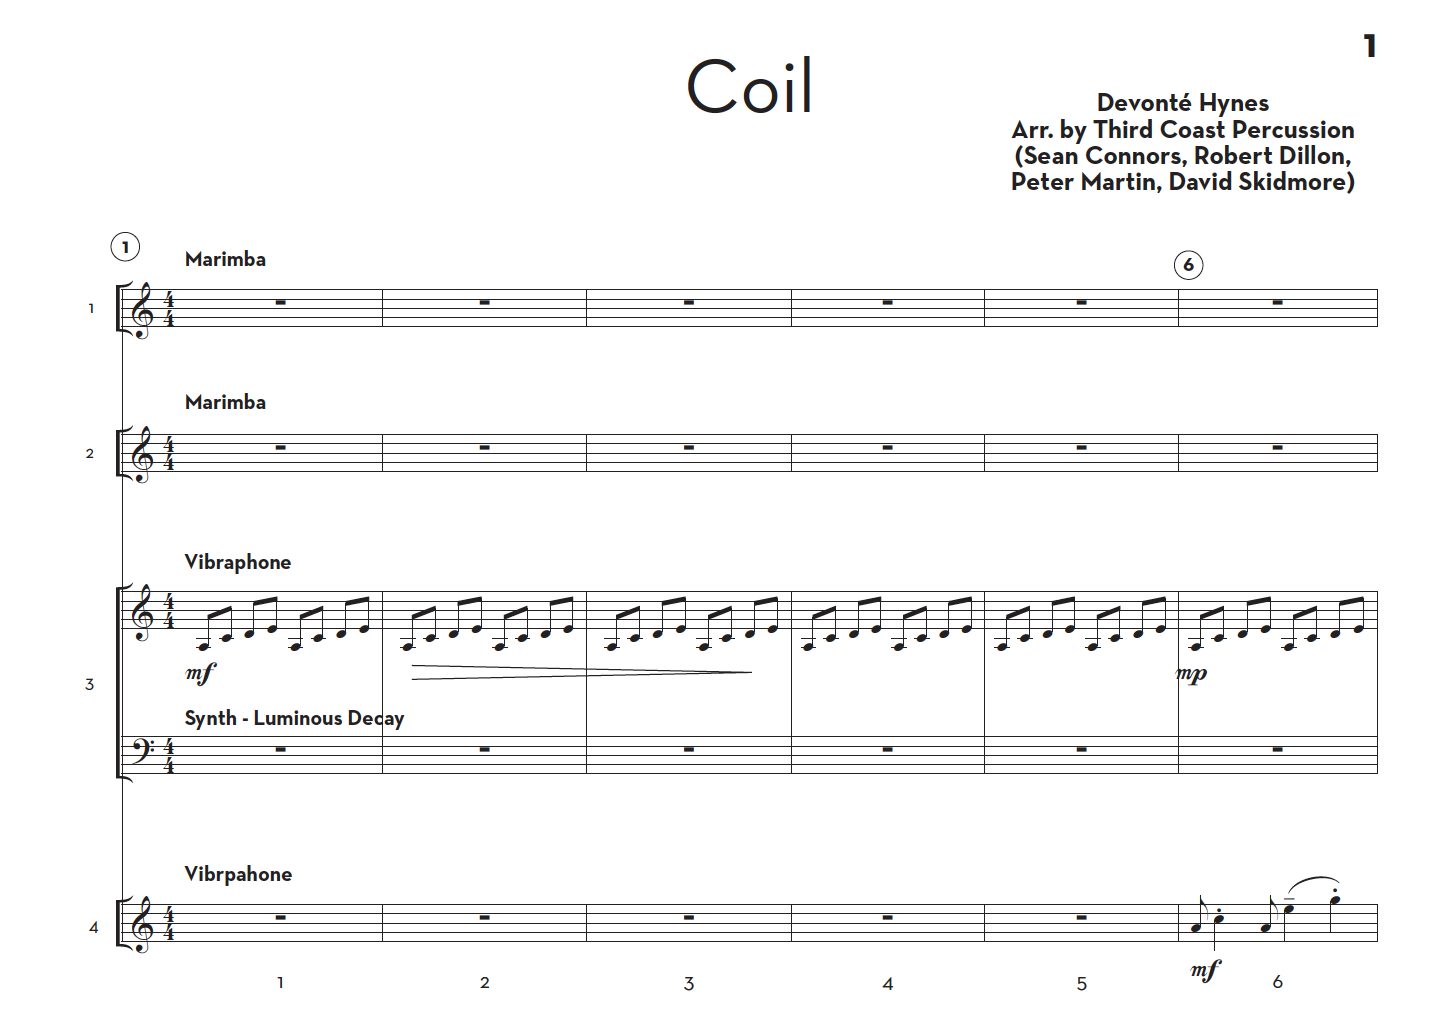 Image of Coil - Score and Parts